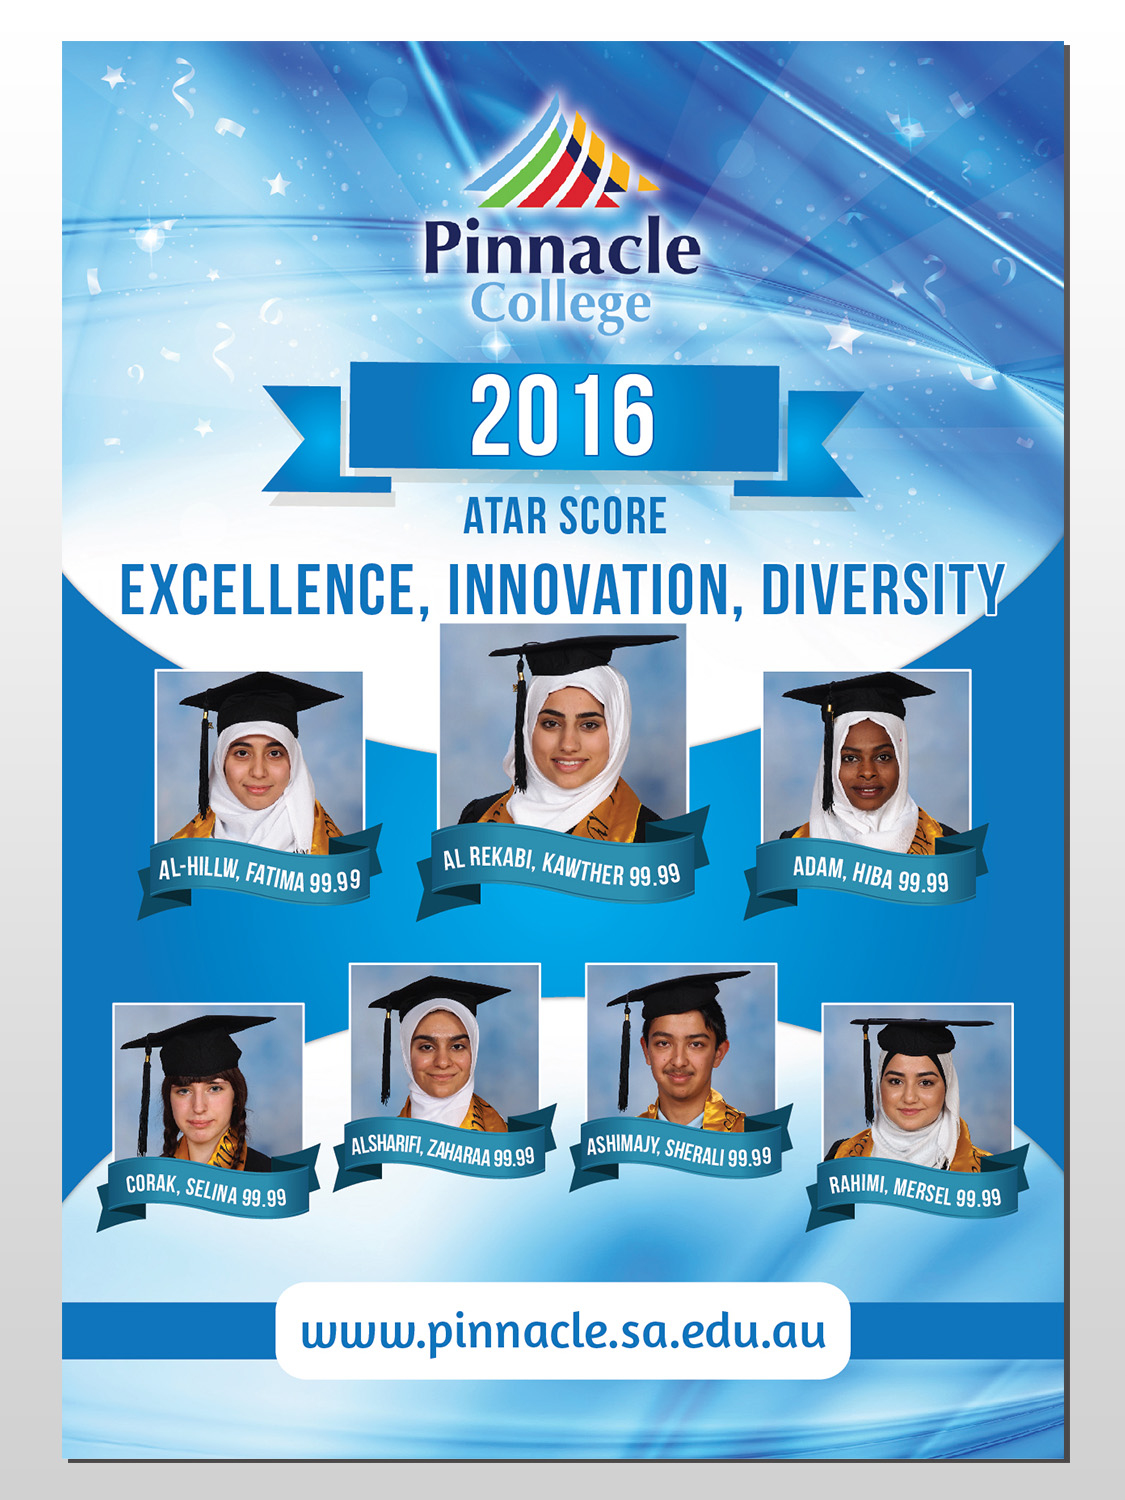 bold modern education poster design for pinnacle college by